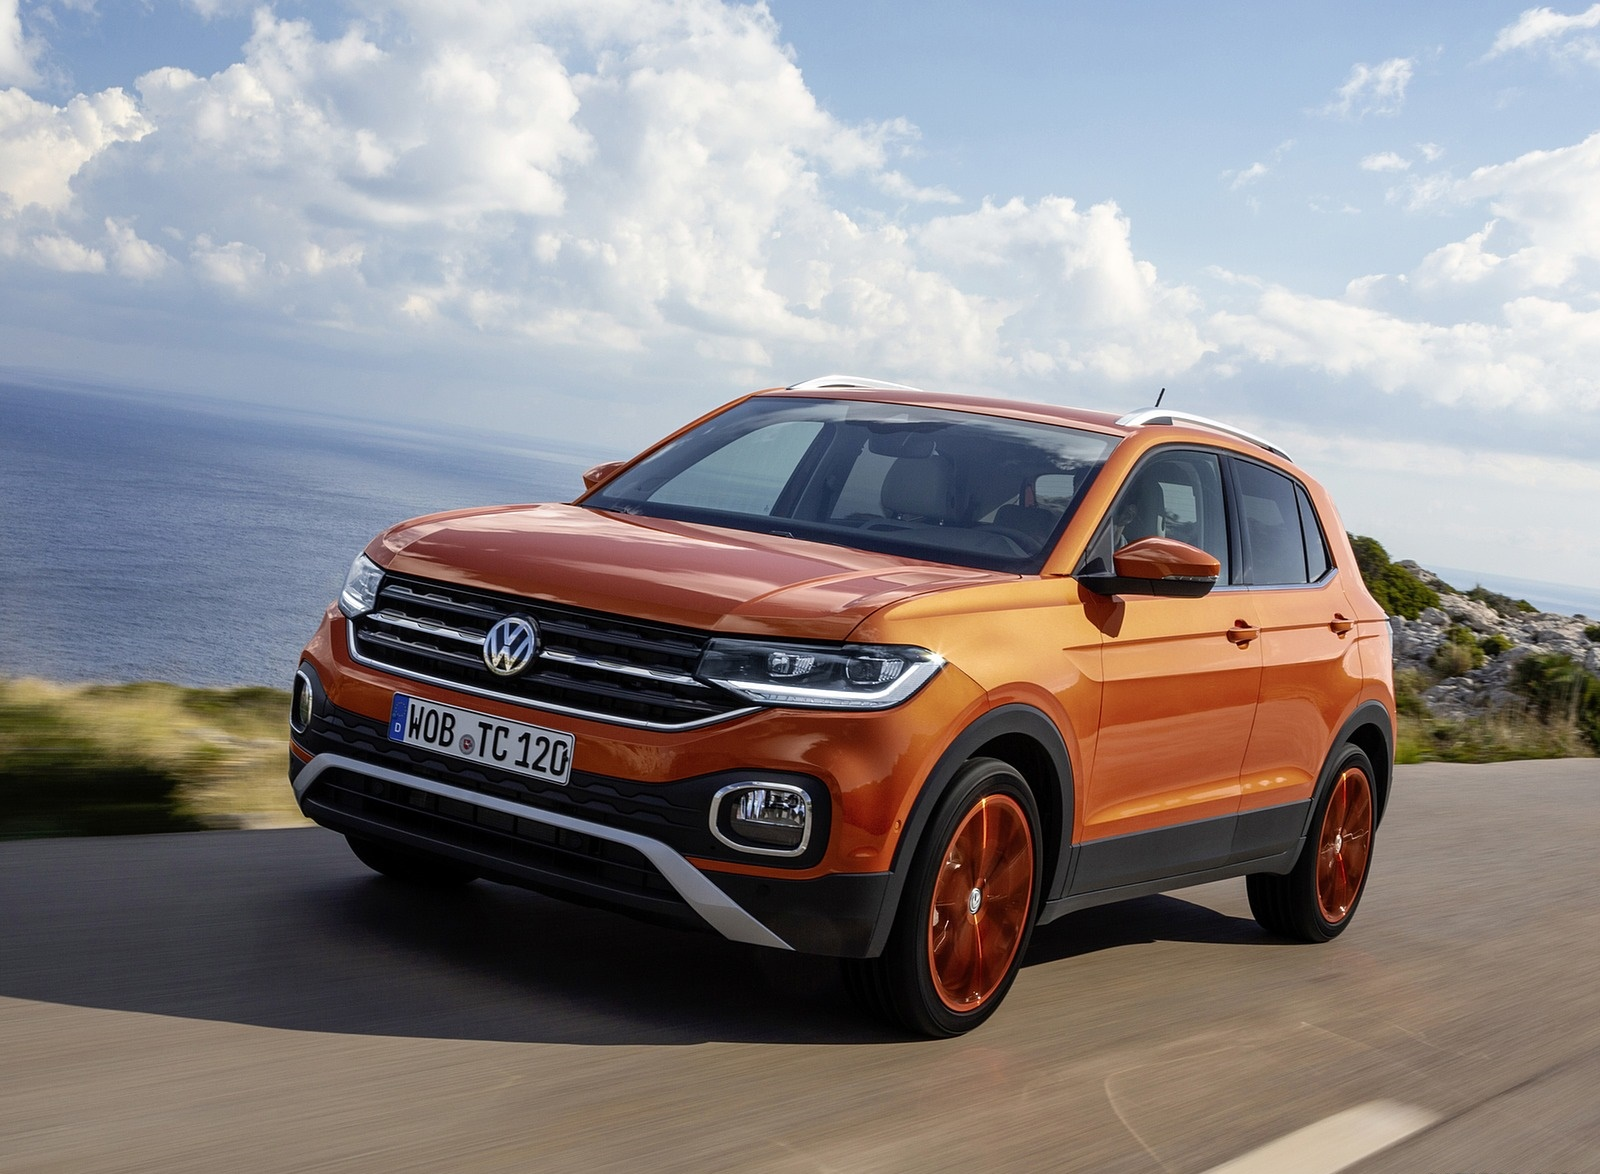 2019 Volkswagen T-Cross Front Three-Quarter Wallpapers #4 of 74